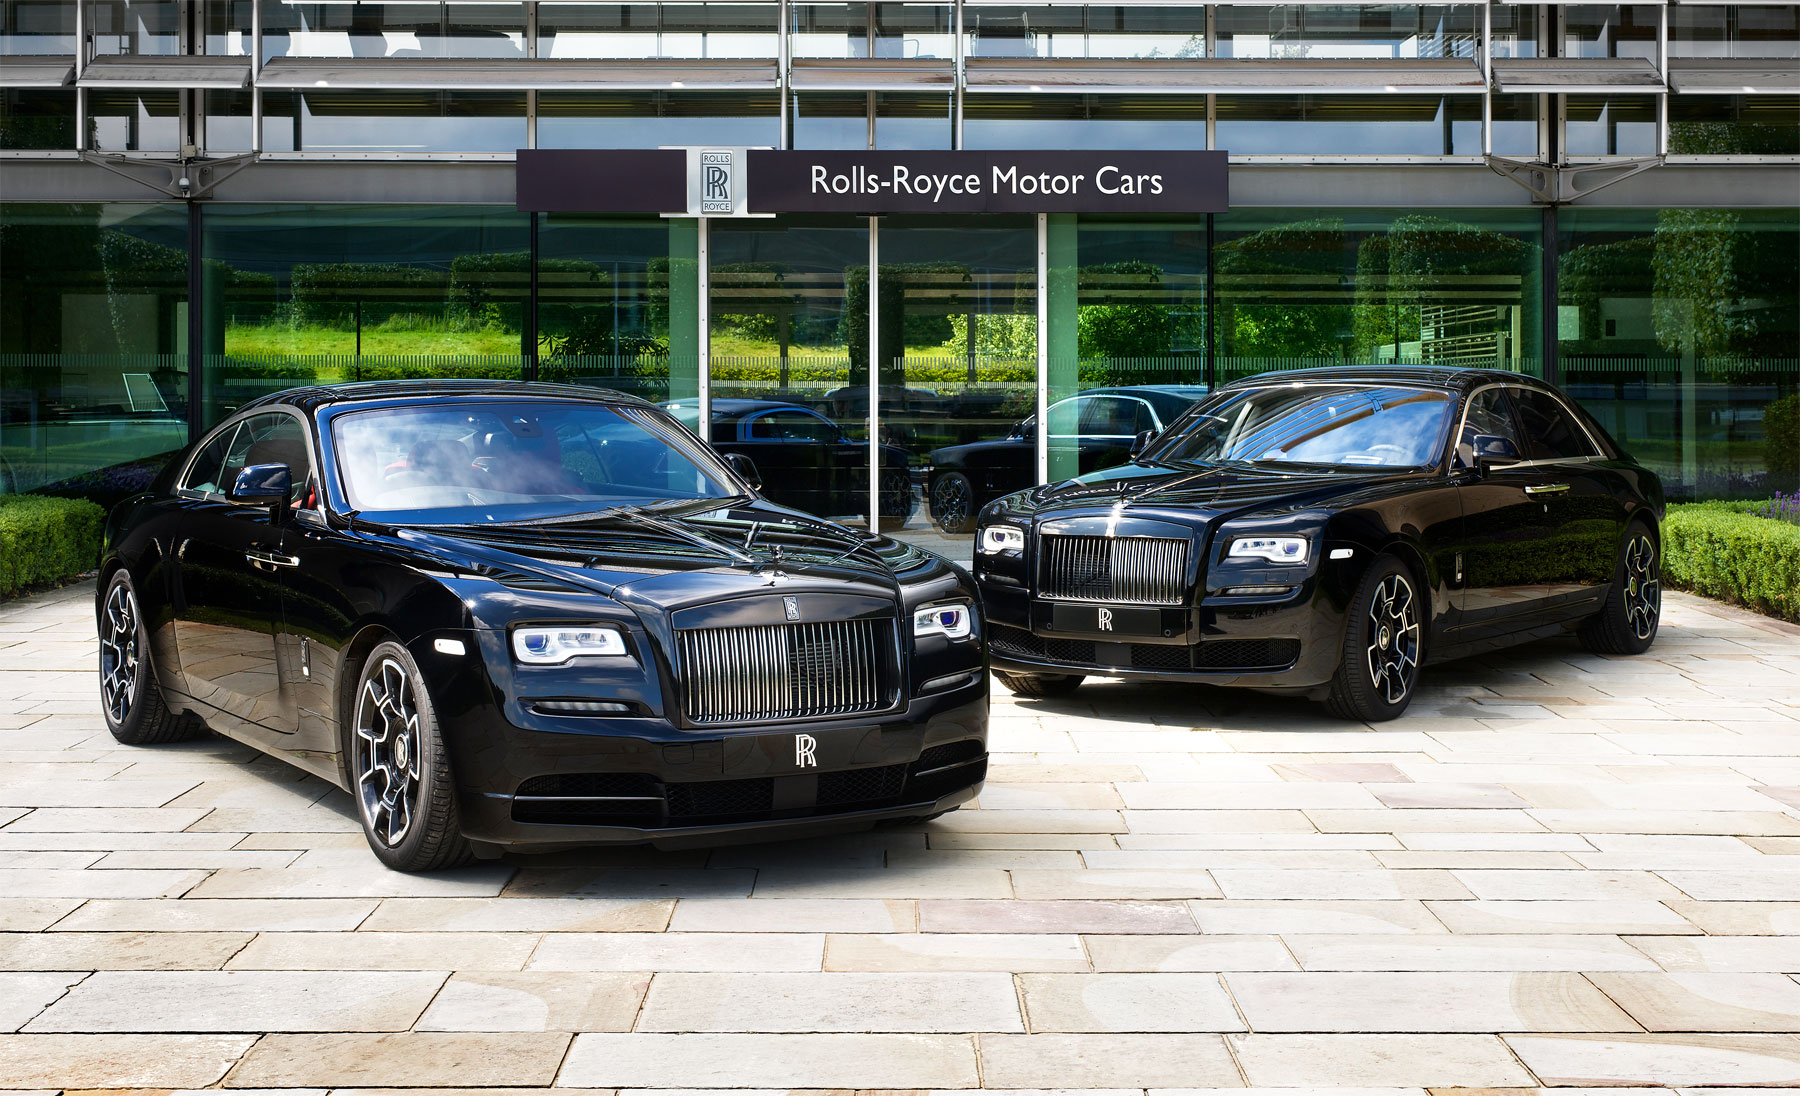 Rolls Royce Brings The Brooding And Edgy Black Badges To Goodwood